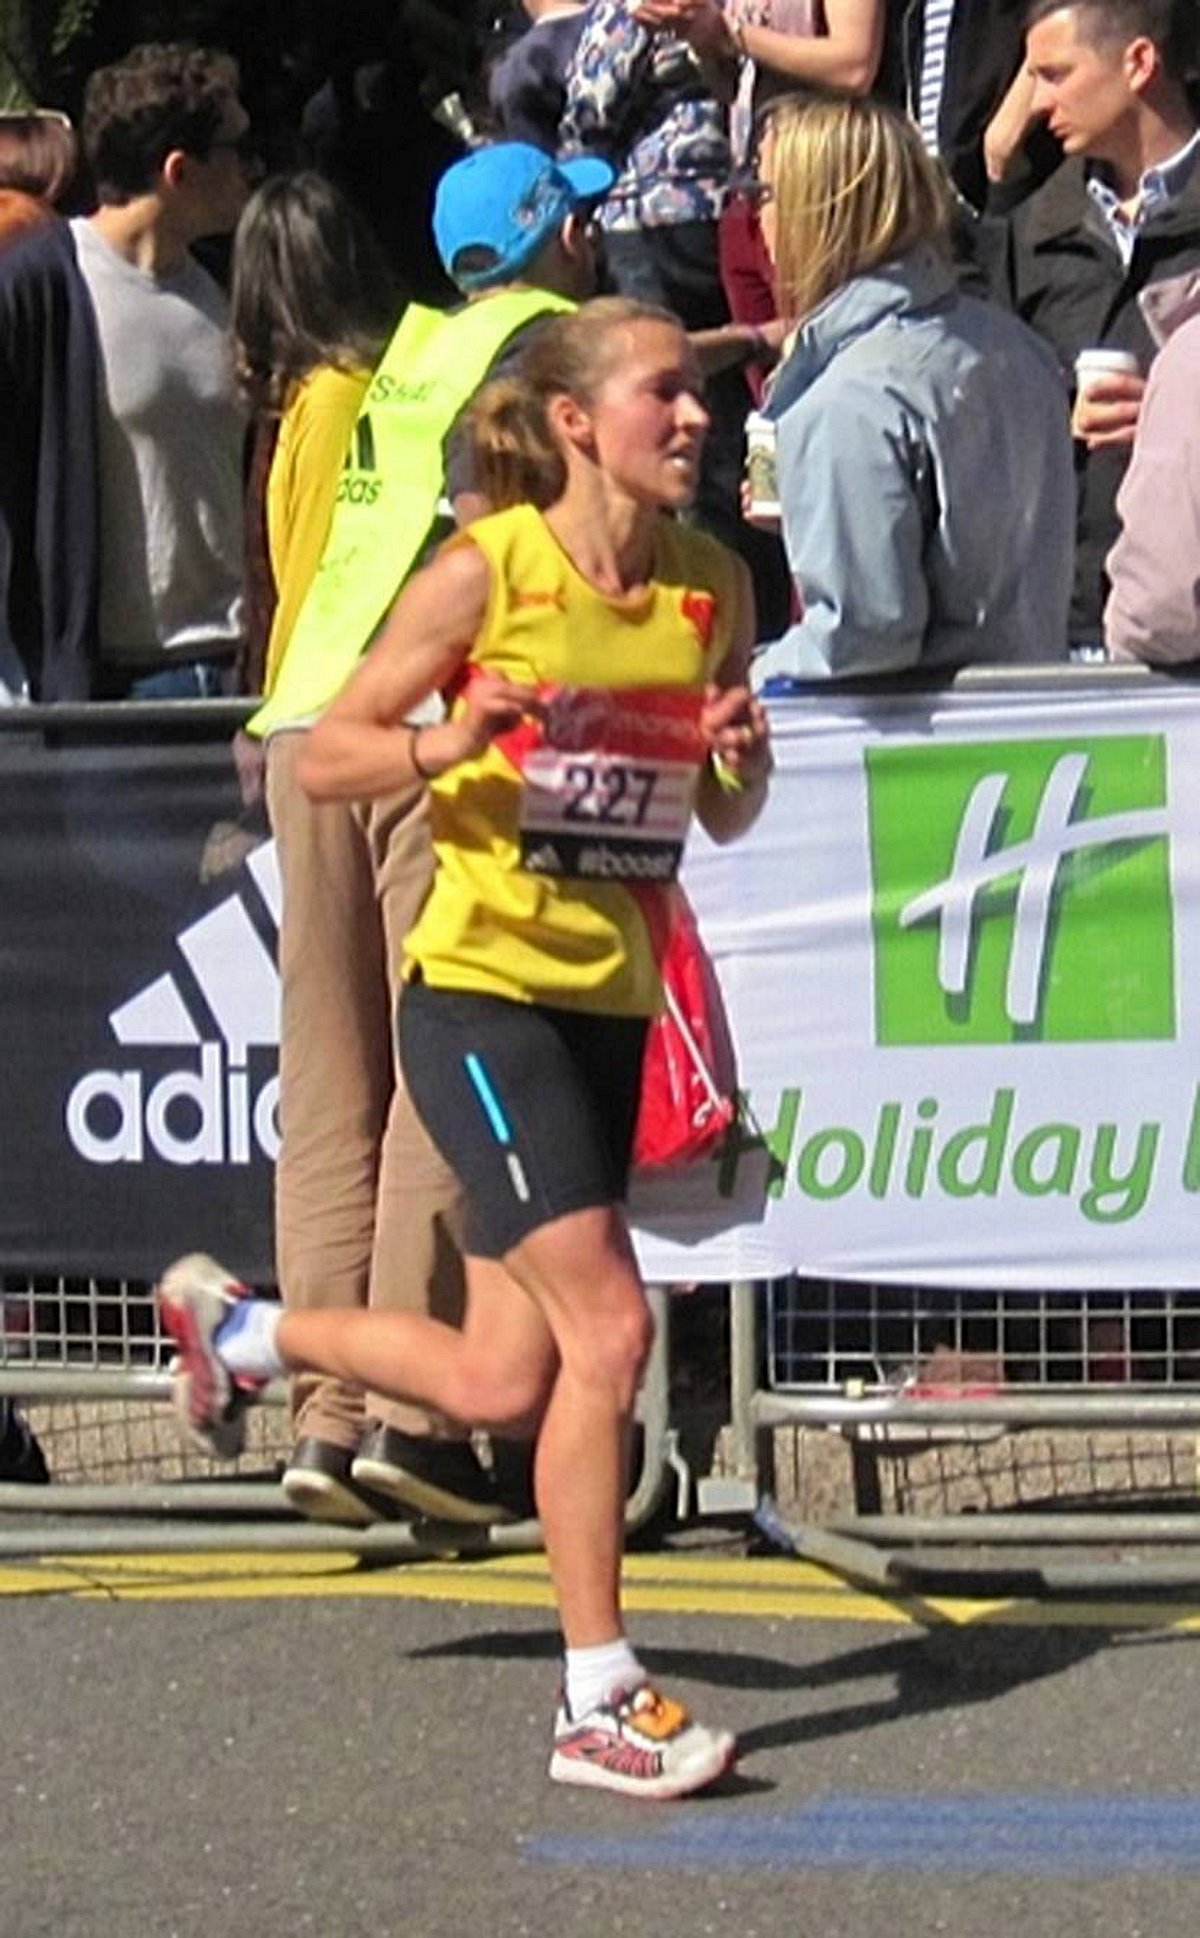 Top running: Claire Grima finished sixth in the women's ov